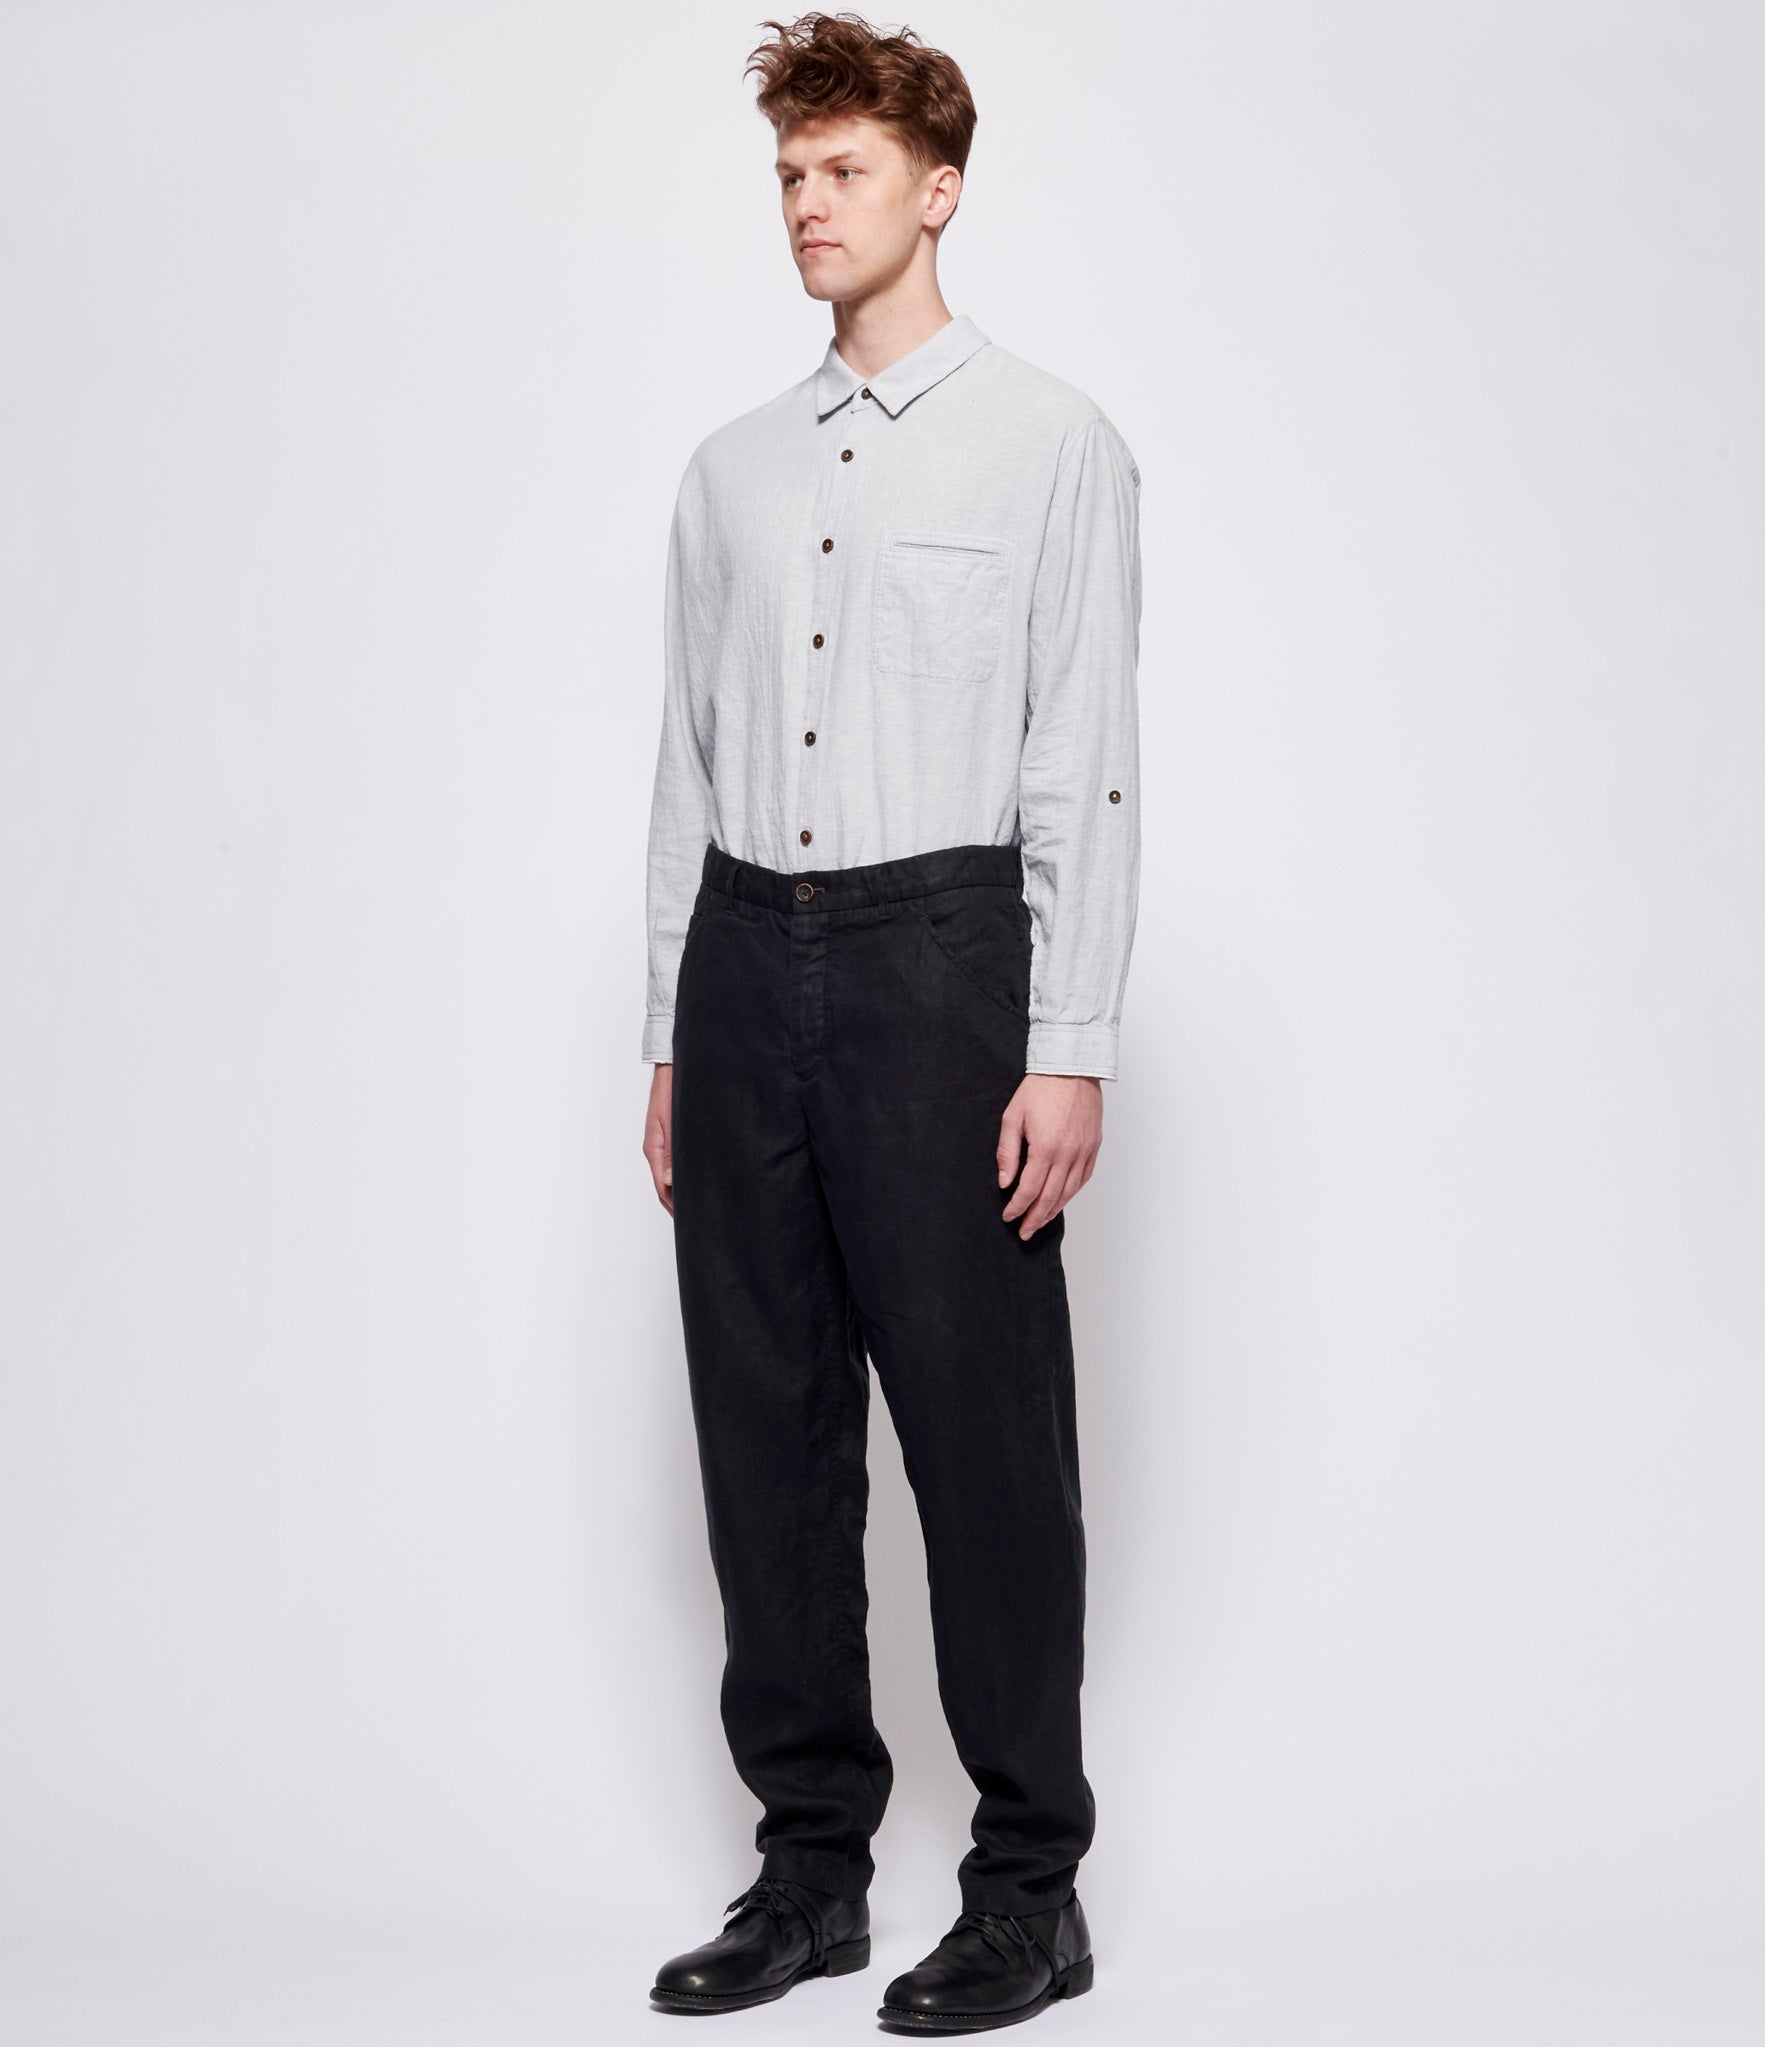 'T Ensemble Black Linen Jeans Pants